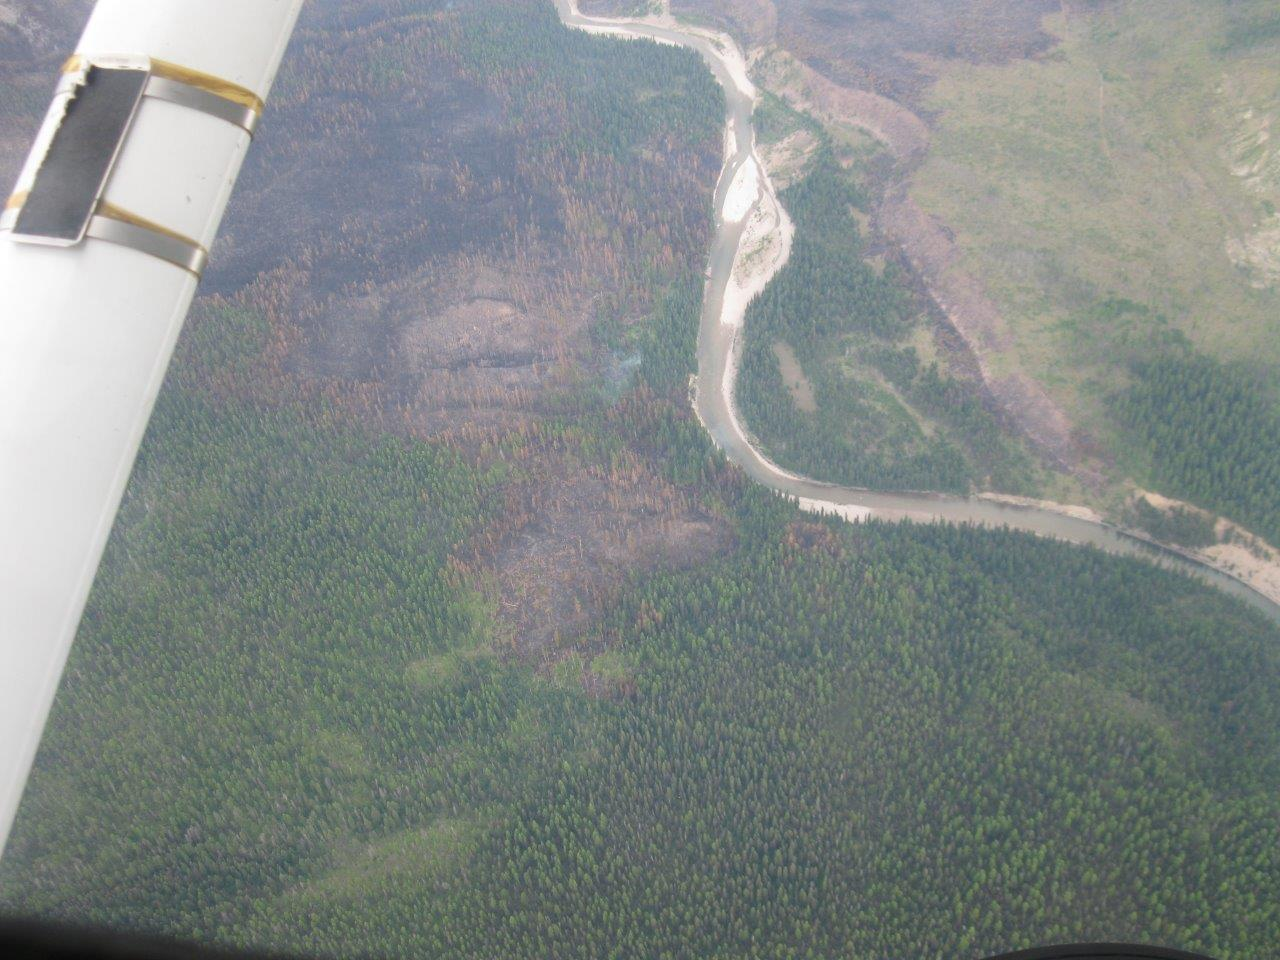 The Snow Creek Fire as seen looking north down the South Fork of the Flathead River. Trail #80 can be seen to the east in the top right of the picture.